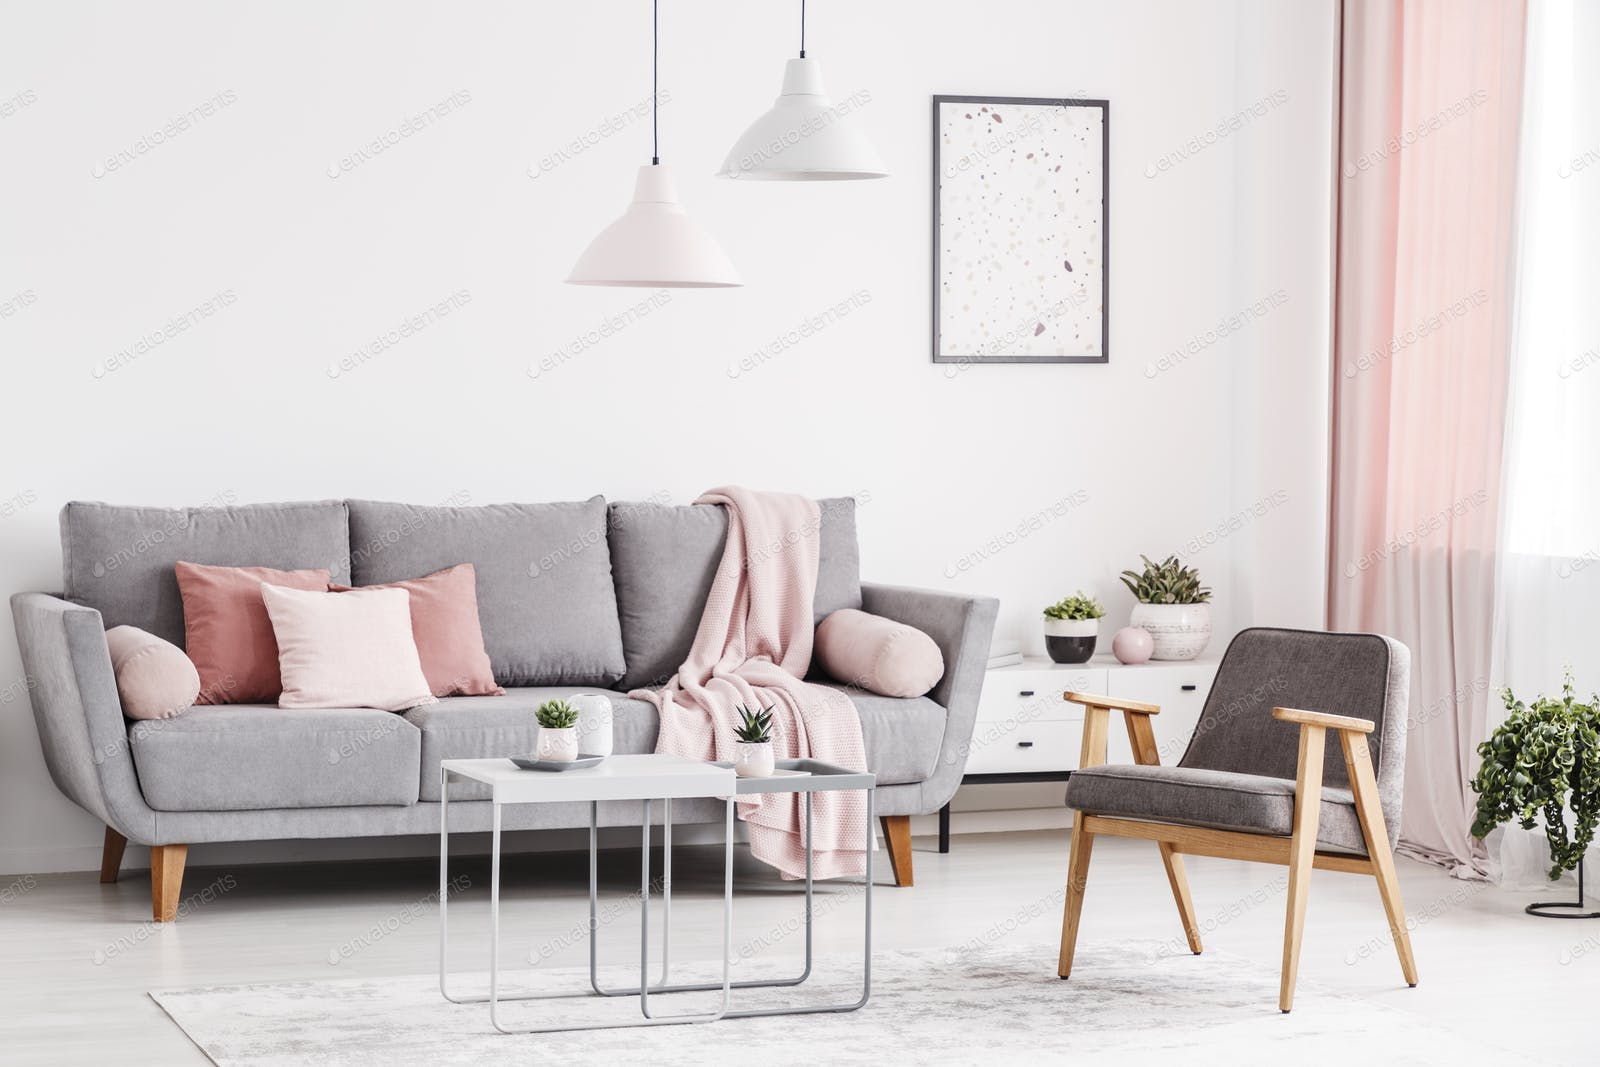 Retro Armchair Grey Sofa With Pink Pillows And Coffee Tables In Photo By Bialasiewicz On Envato Elements